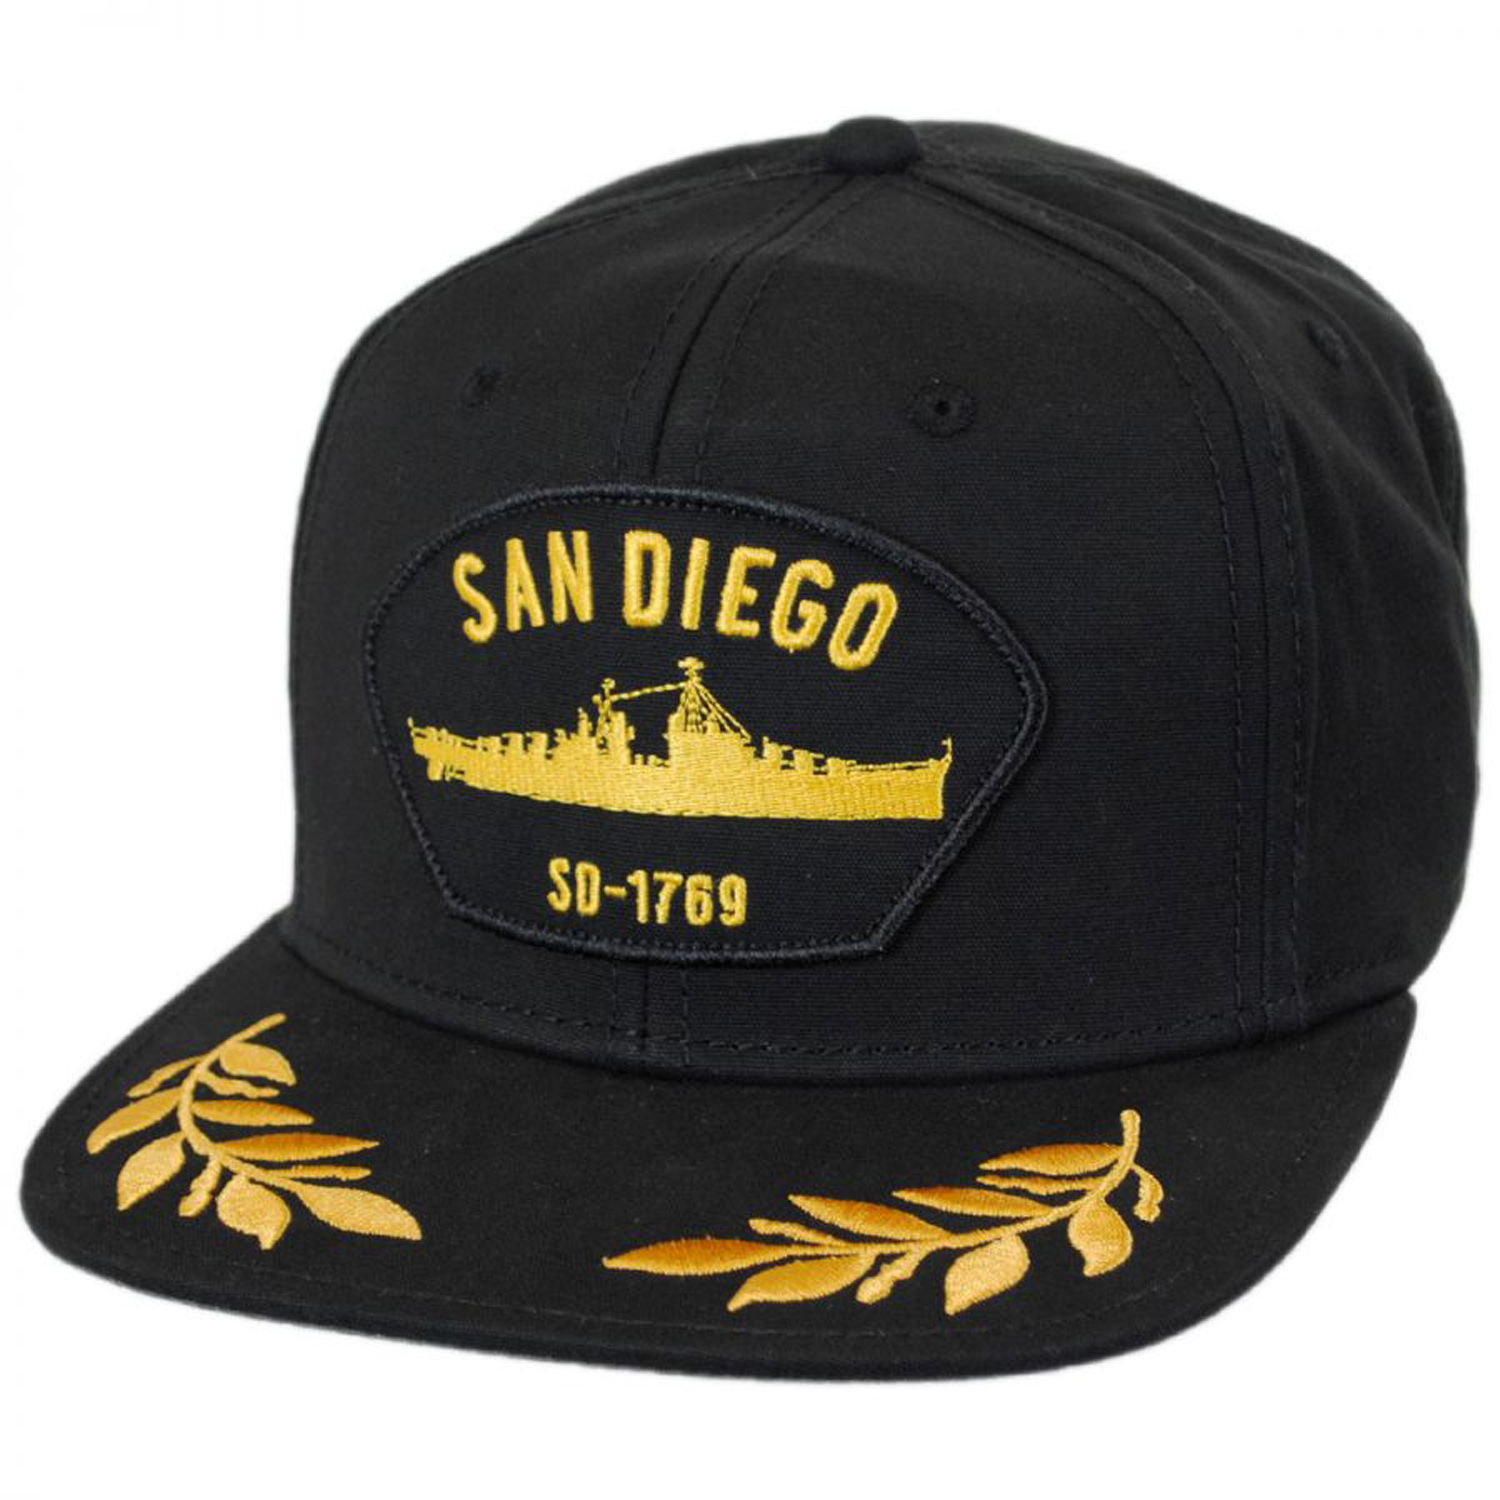 1c44d303e87c8 Show love for America s finest city with the San Diego Snapback Baseball Cap  by Goorin Bros! Featuring a carrier vessel patch on its front